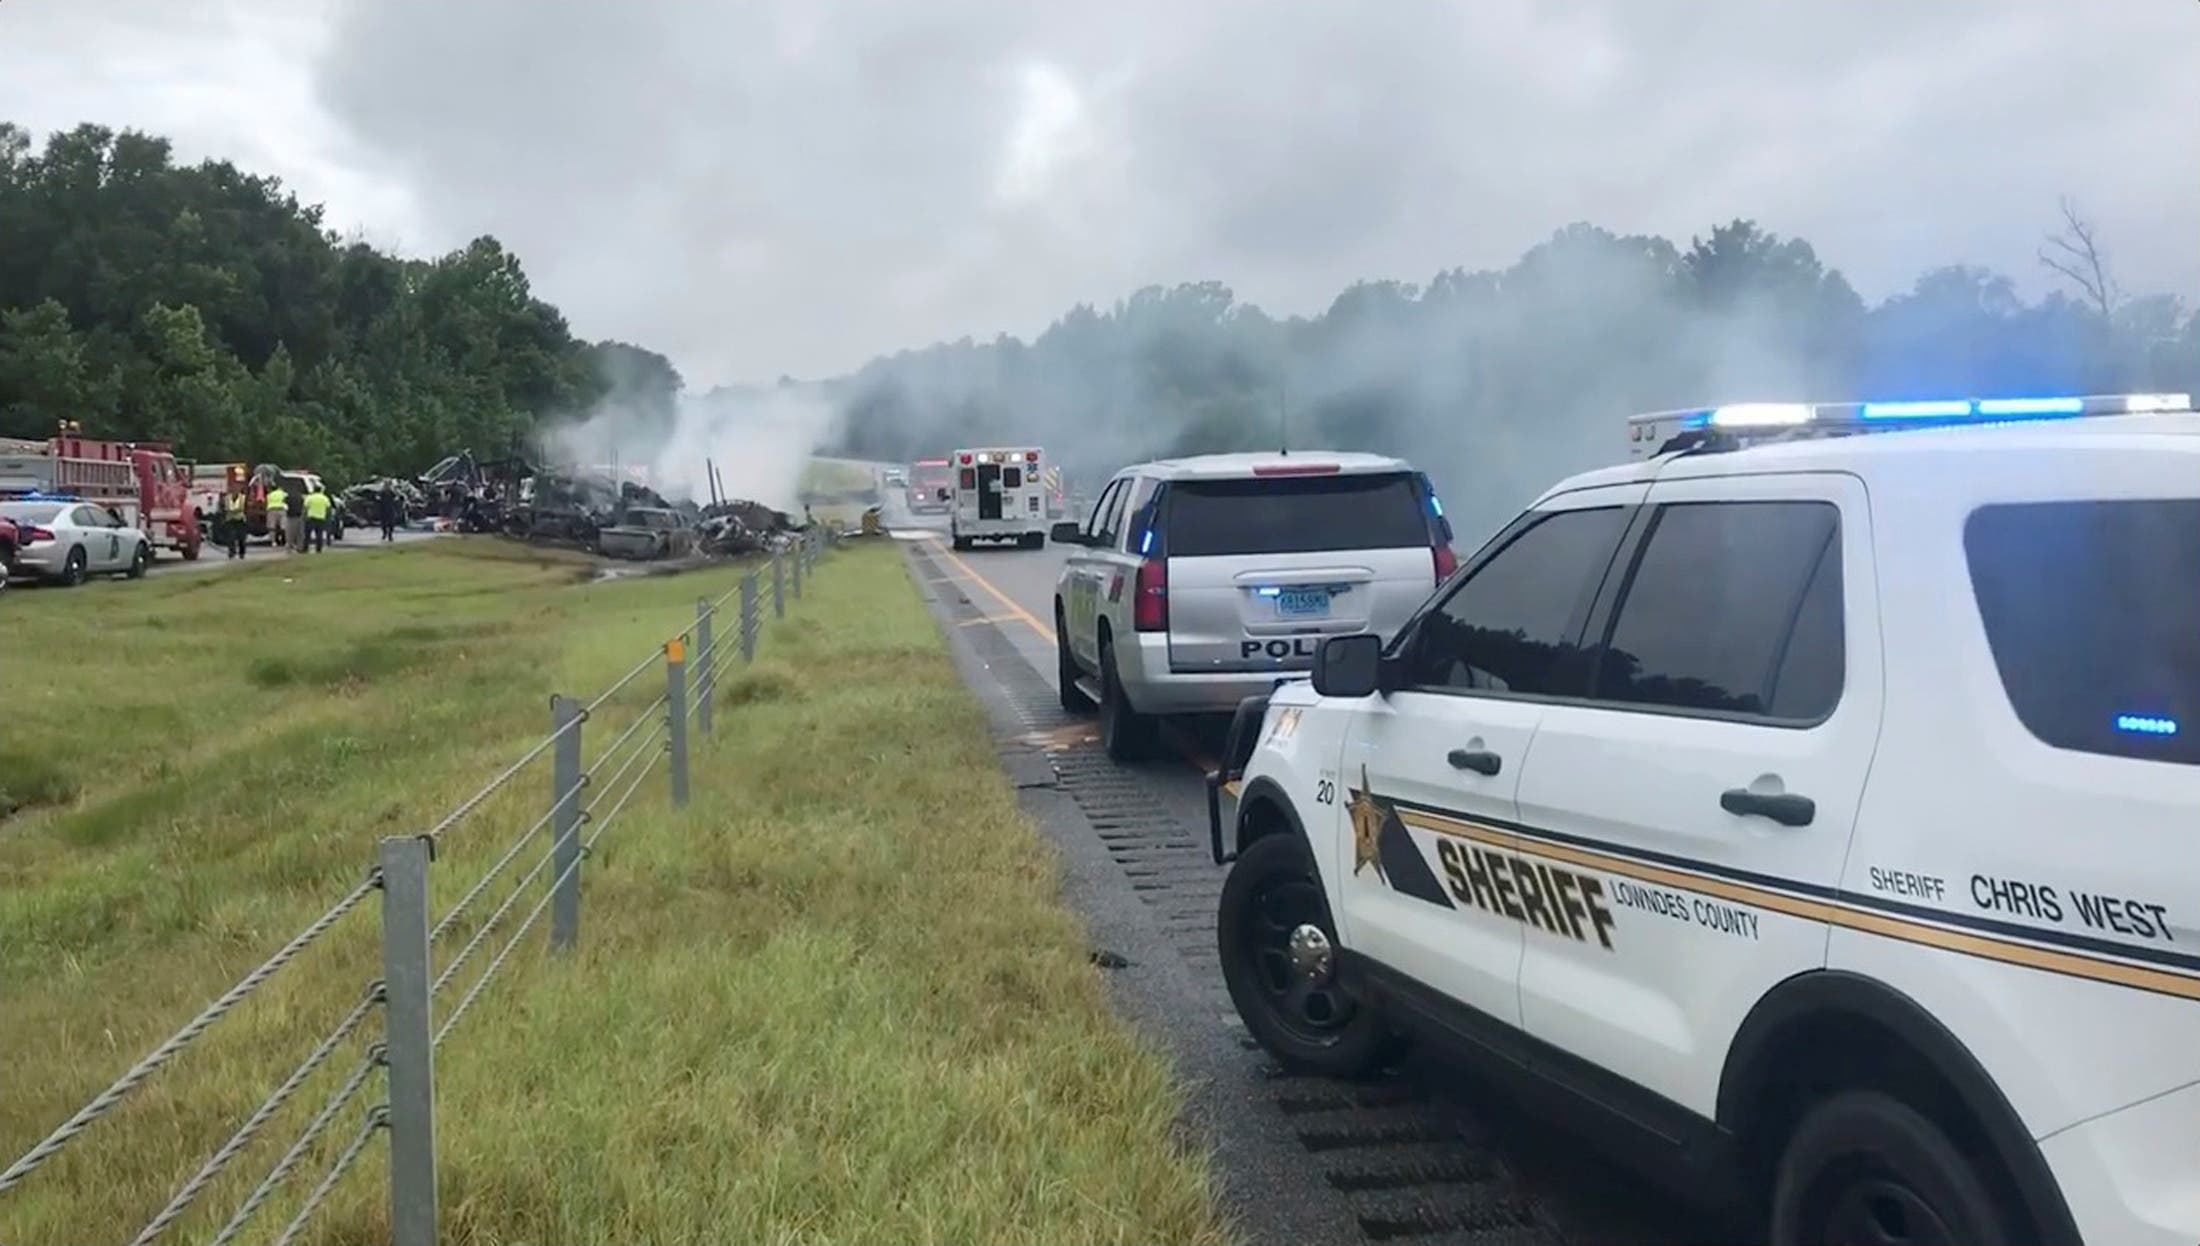 Smoke rises from the wreckage after about 18 vehicles slammed together on a rain-drenched Alabama highway during Tropical Storm Claudette, in Butler County, Alabama, US, June 19, 2021. (Reuters)